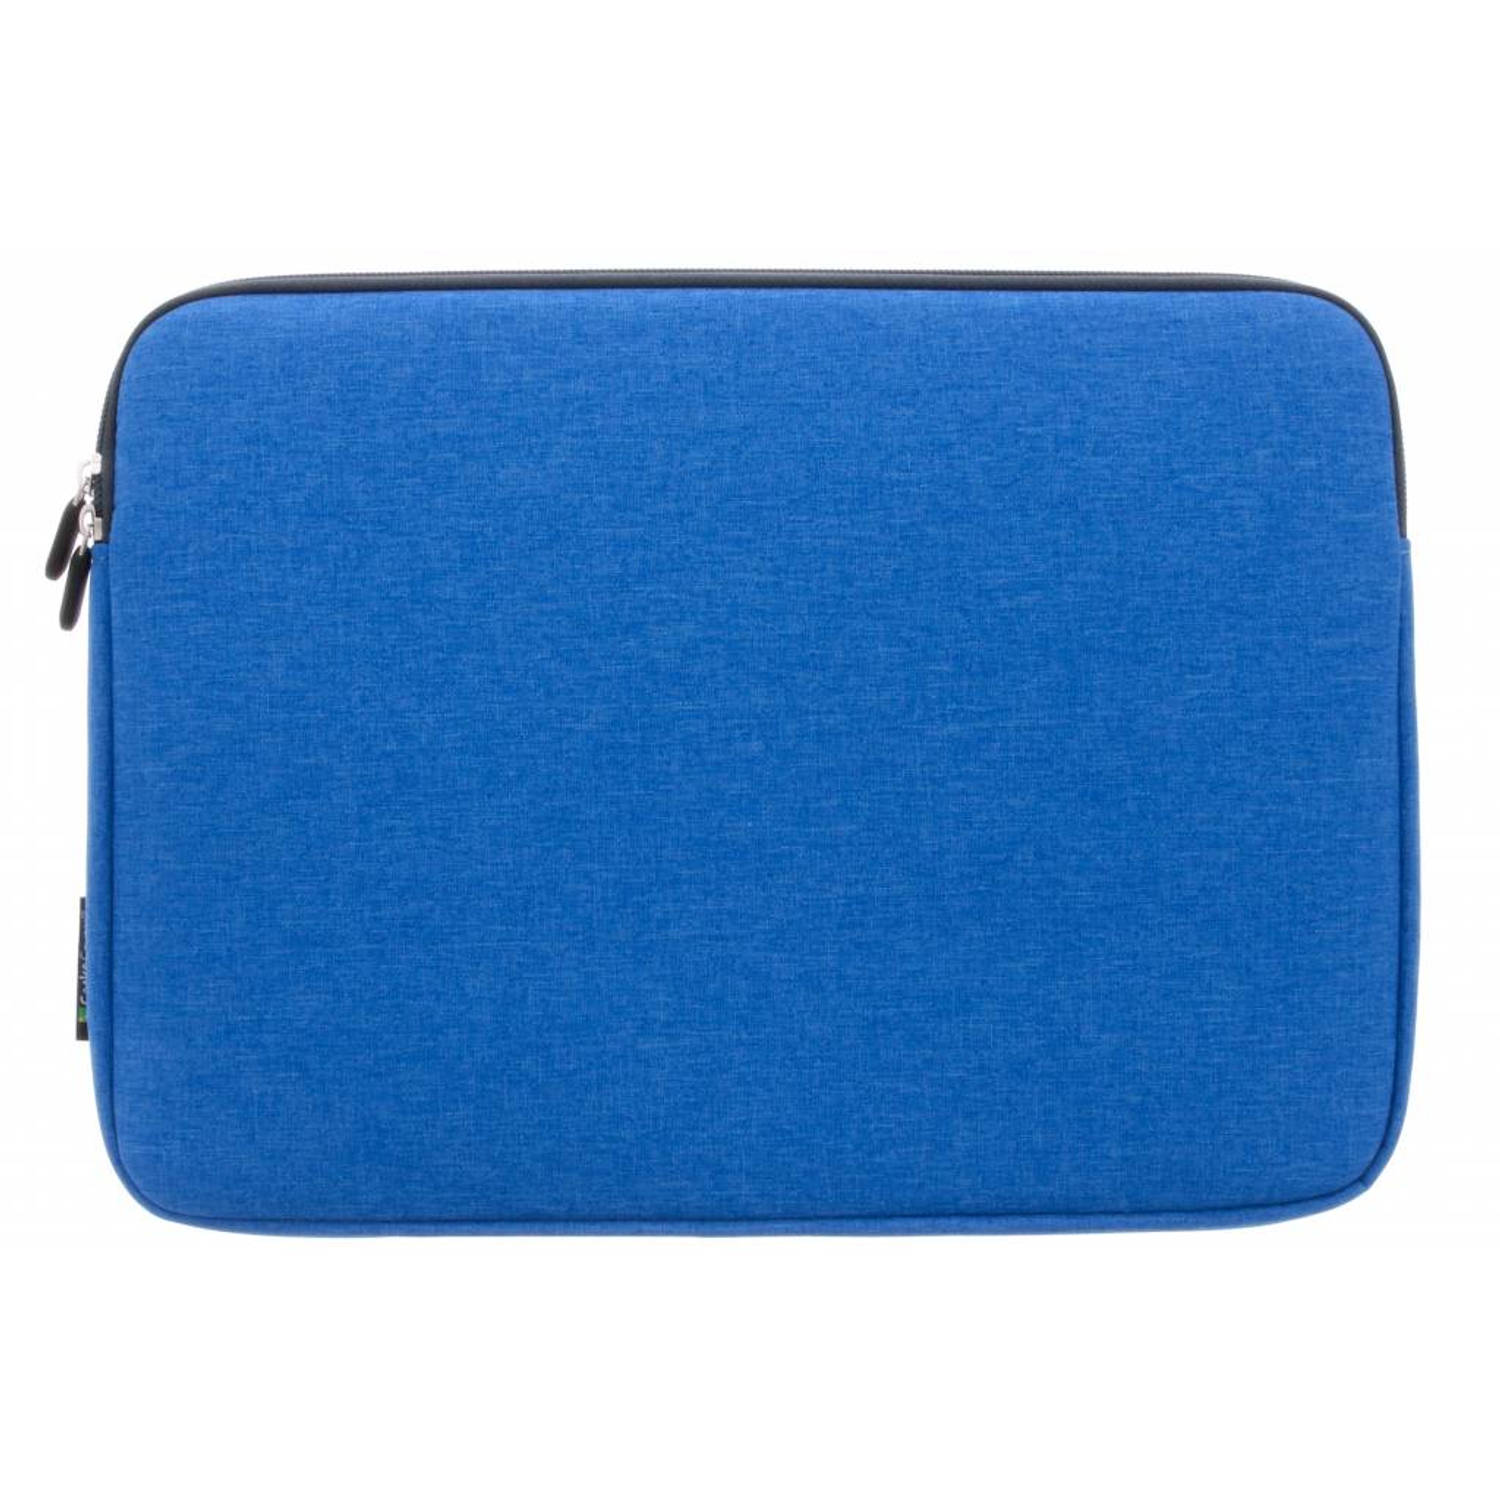 Gecko Covers Universal Zipper Laptop Sleeve 13 Inch